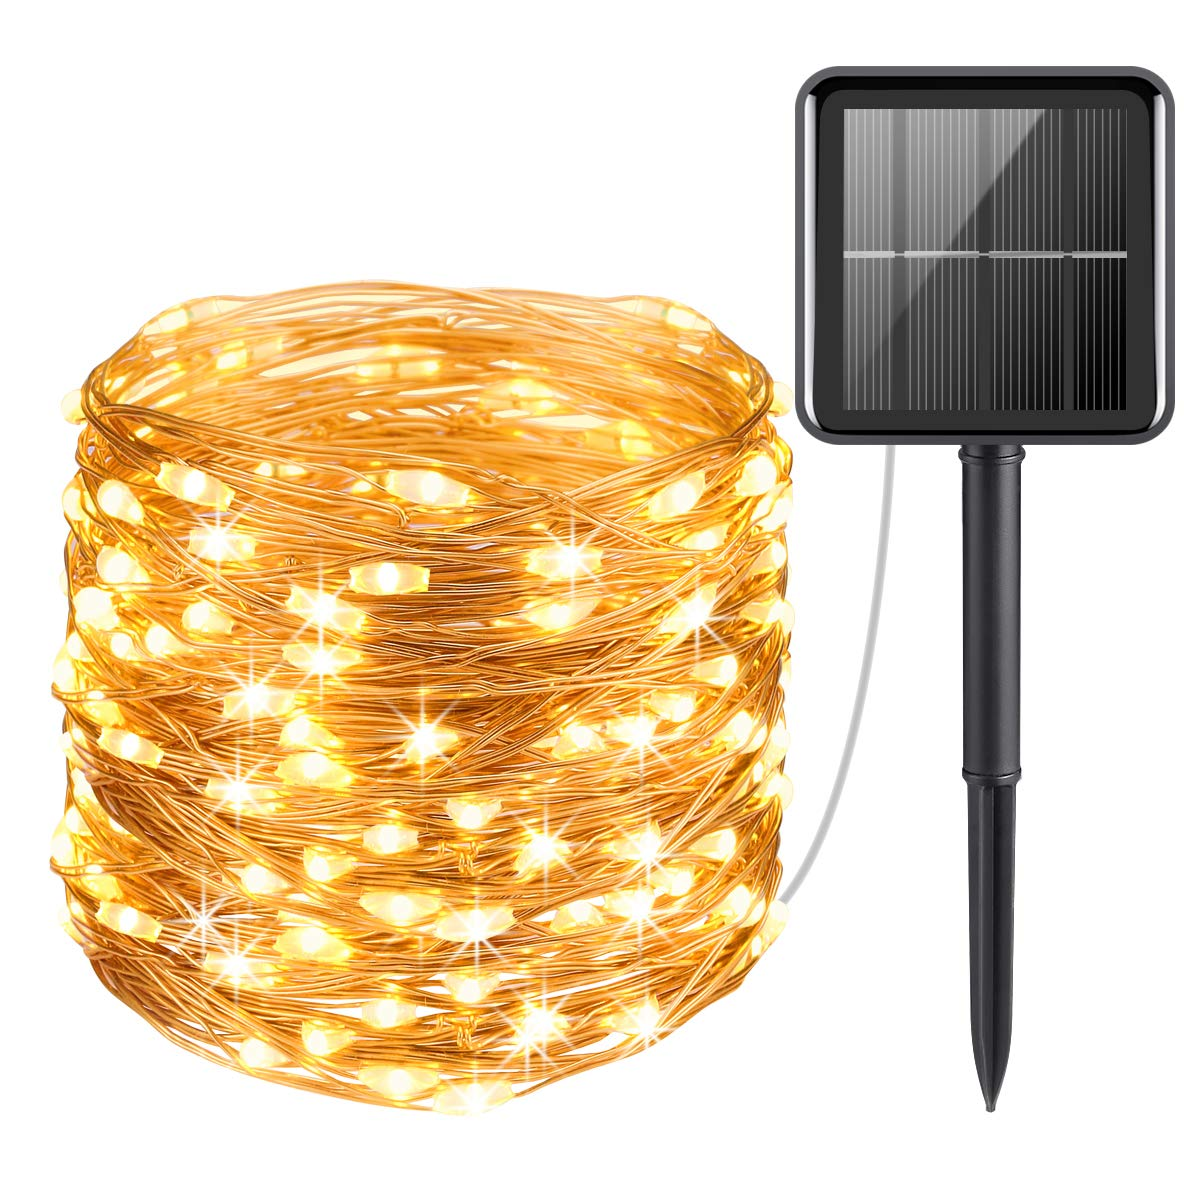 10M LED Solar String Lights Waterproof Copper Wire Fairy Outdoor Garden Home